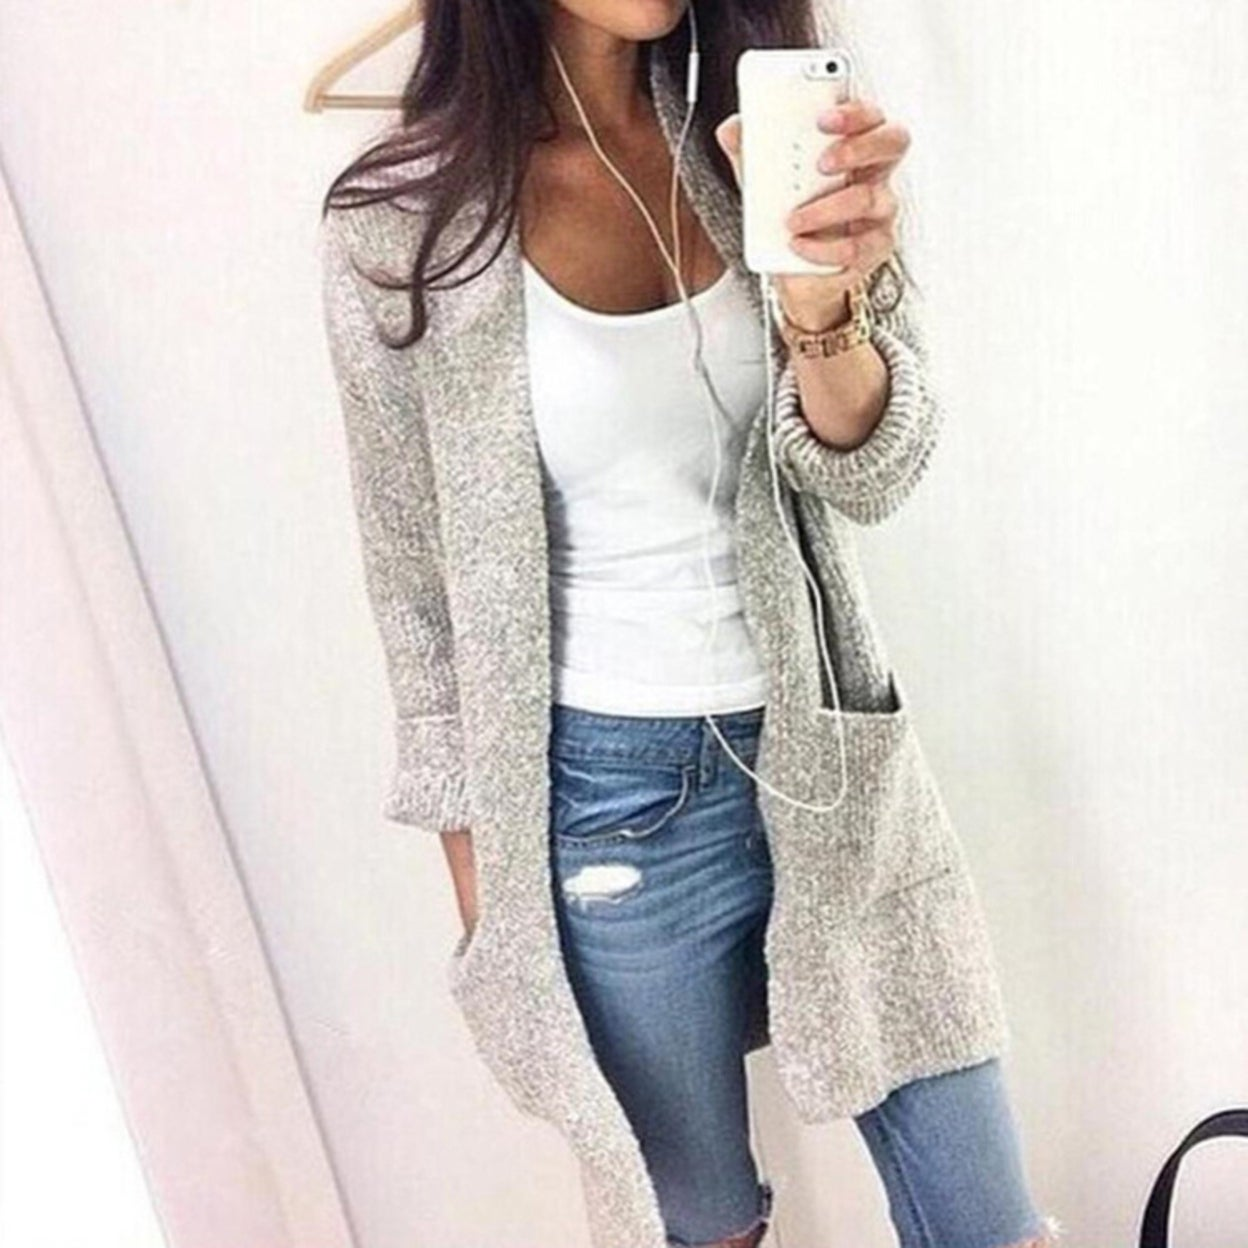 Women Sweater Cardigan Jacket Section Long Sleeved Large Pocket Casual Home Outdoor Knitwear As shown